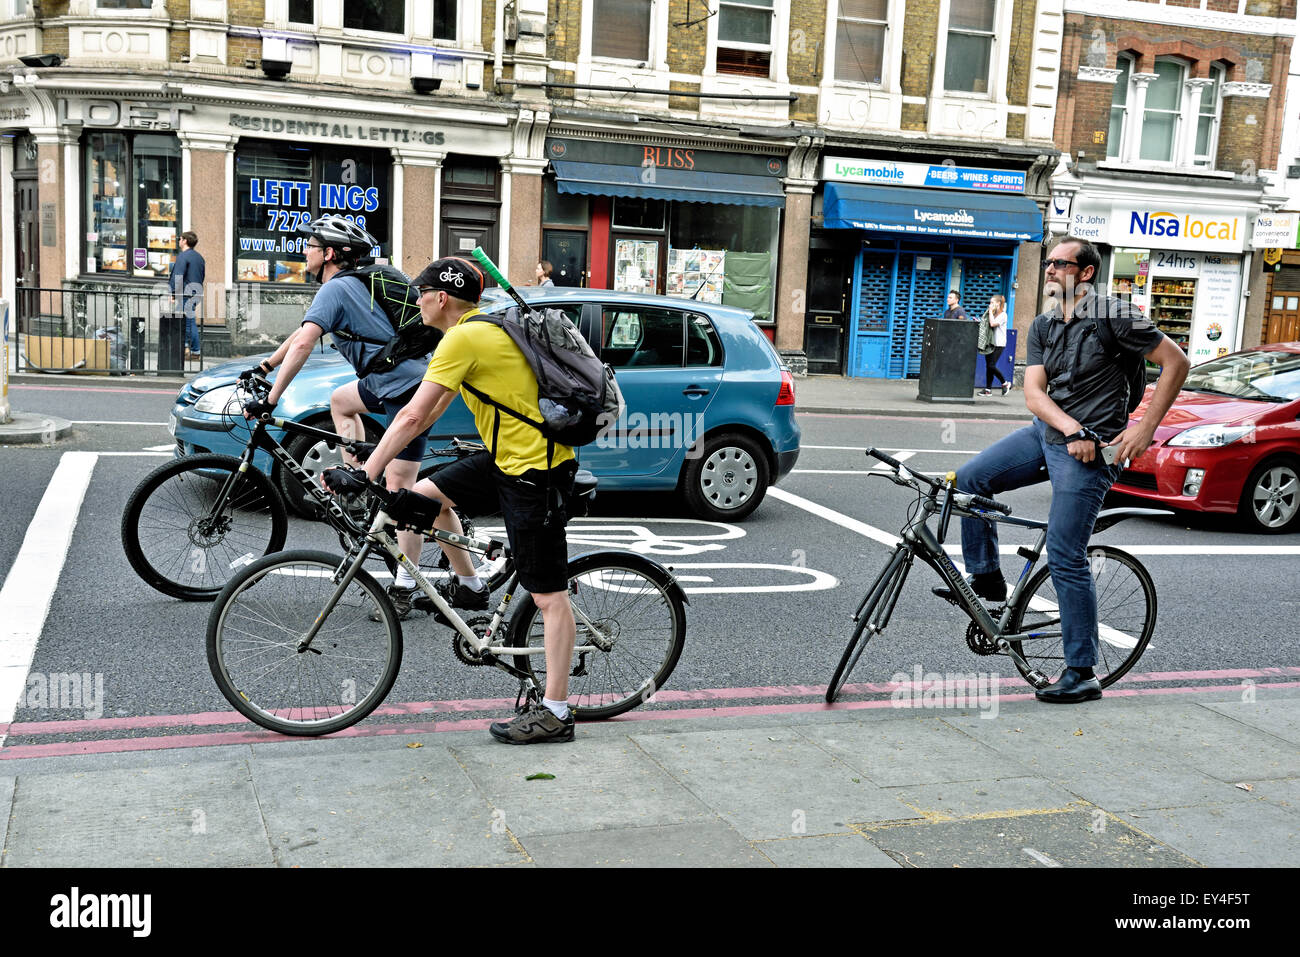 Commuter cyclists in advance stop lane alongside illegally positioned car, Angel, London Borough of Islington, England - Stock Image